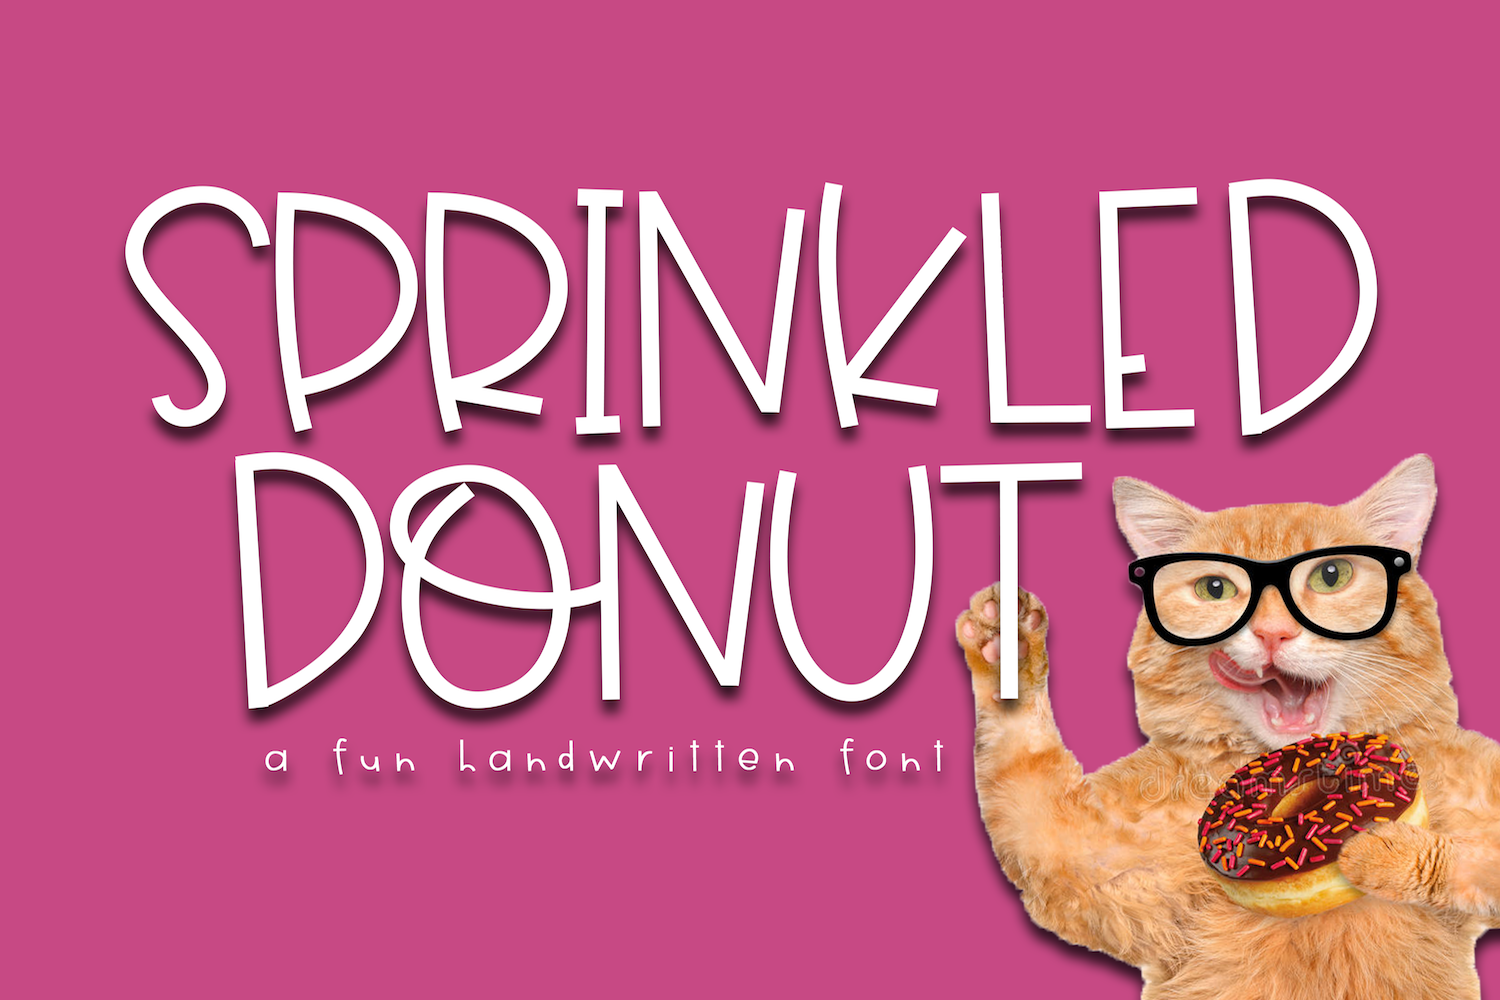 Sprinkled Donut - A Handwritten Font example image 1